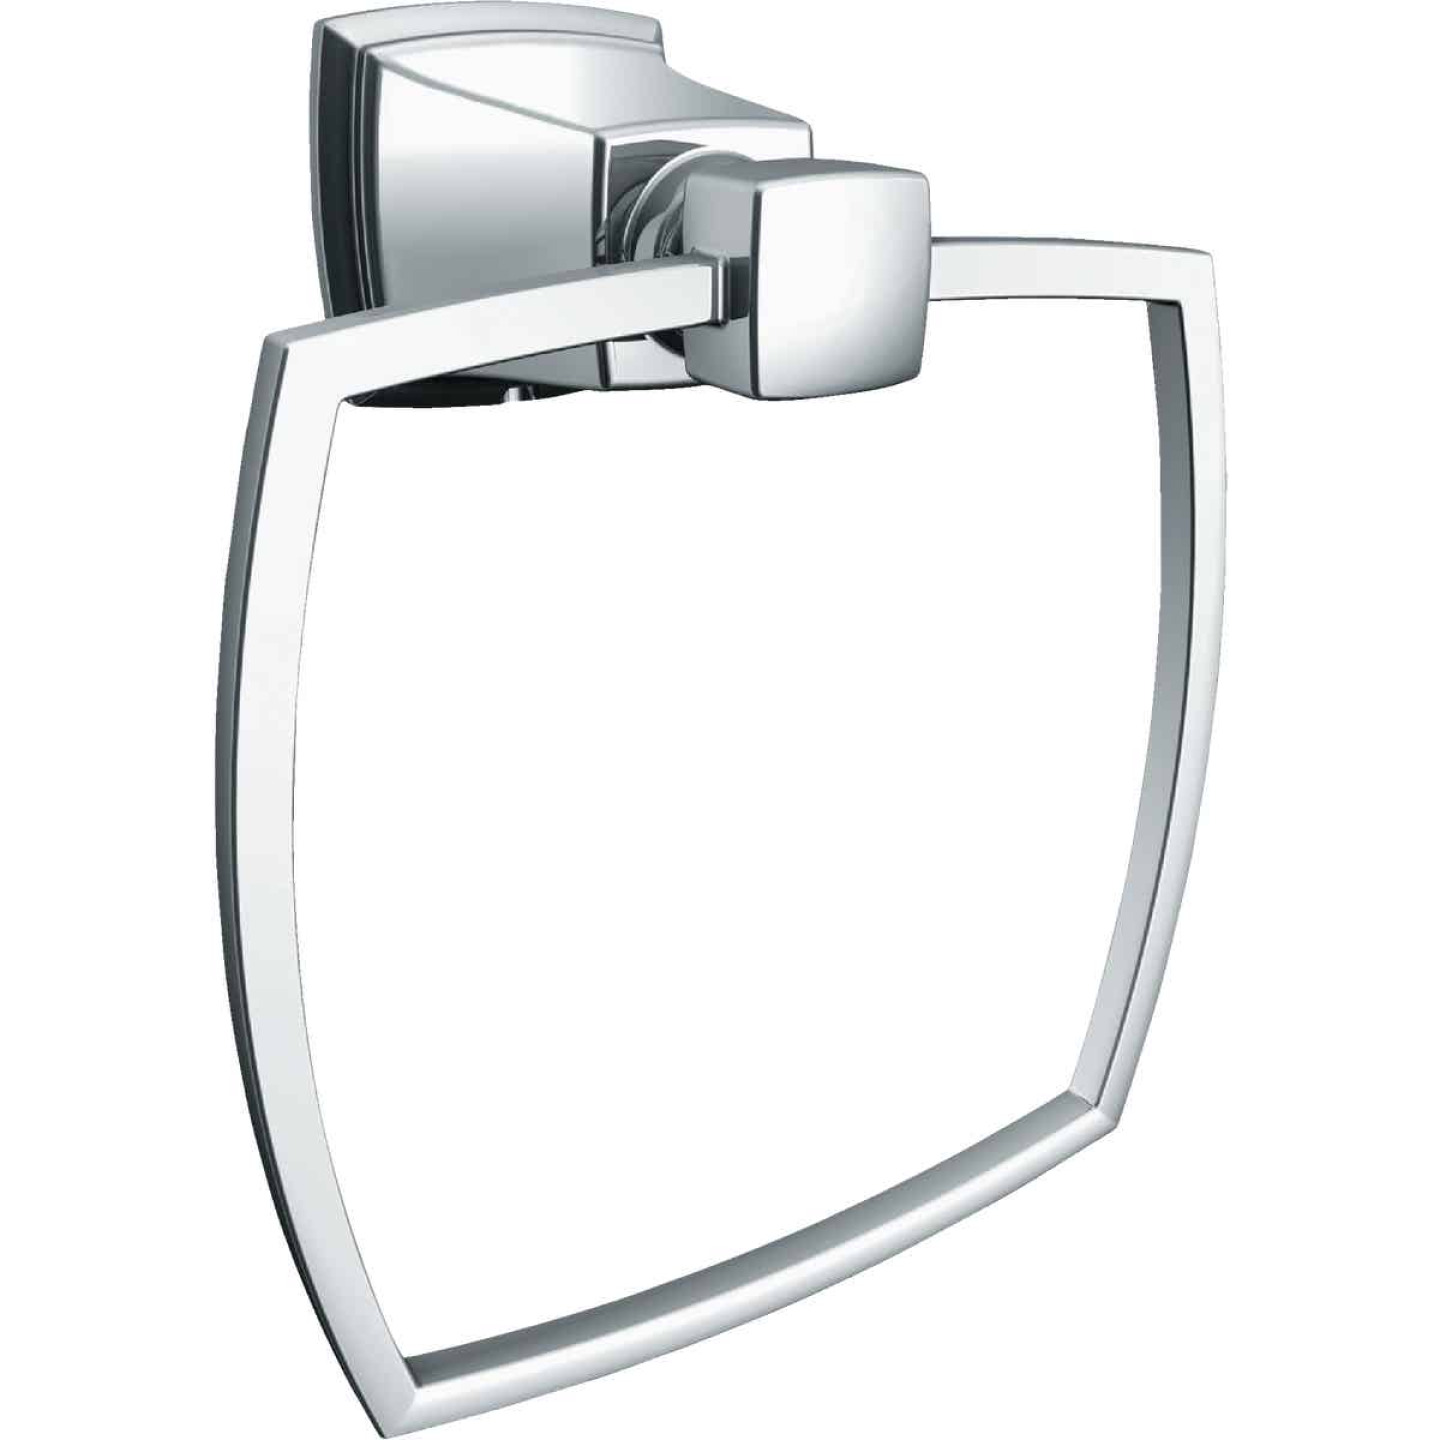 Moen Chrome 5.1 In. Towel Ring Image 1